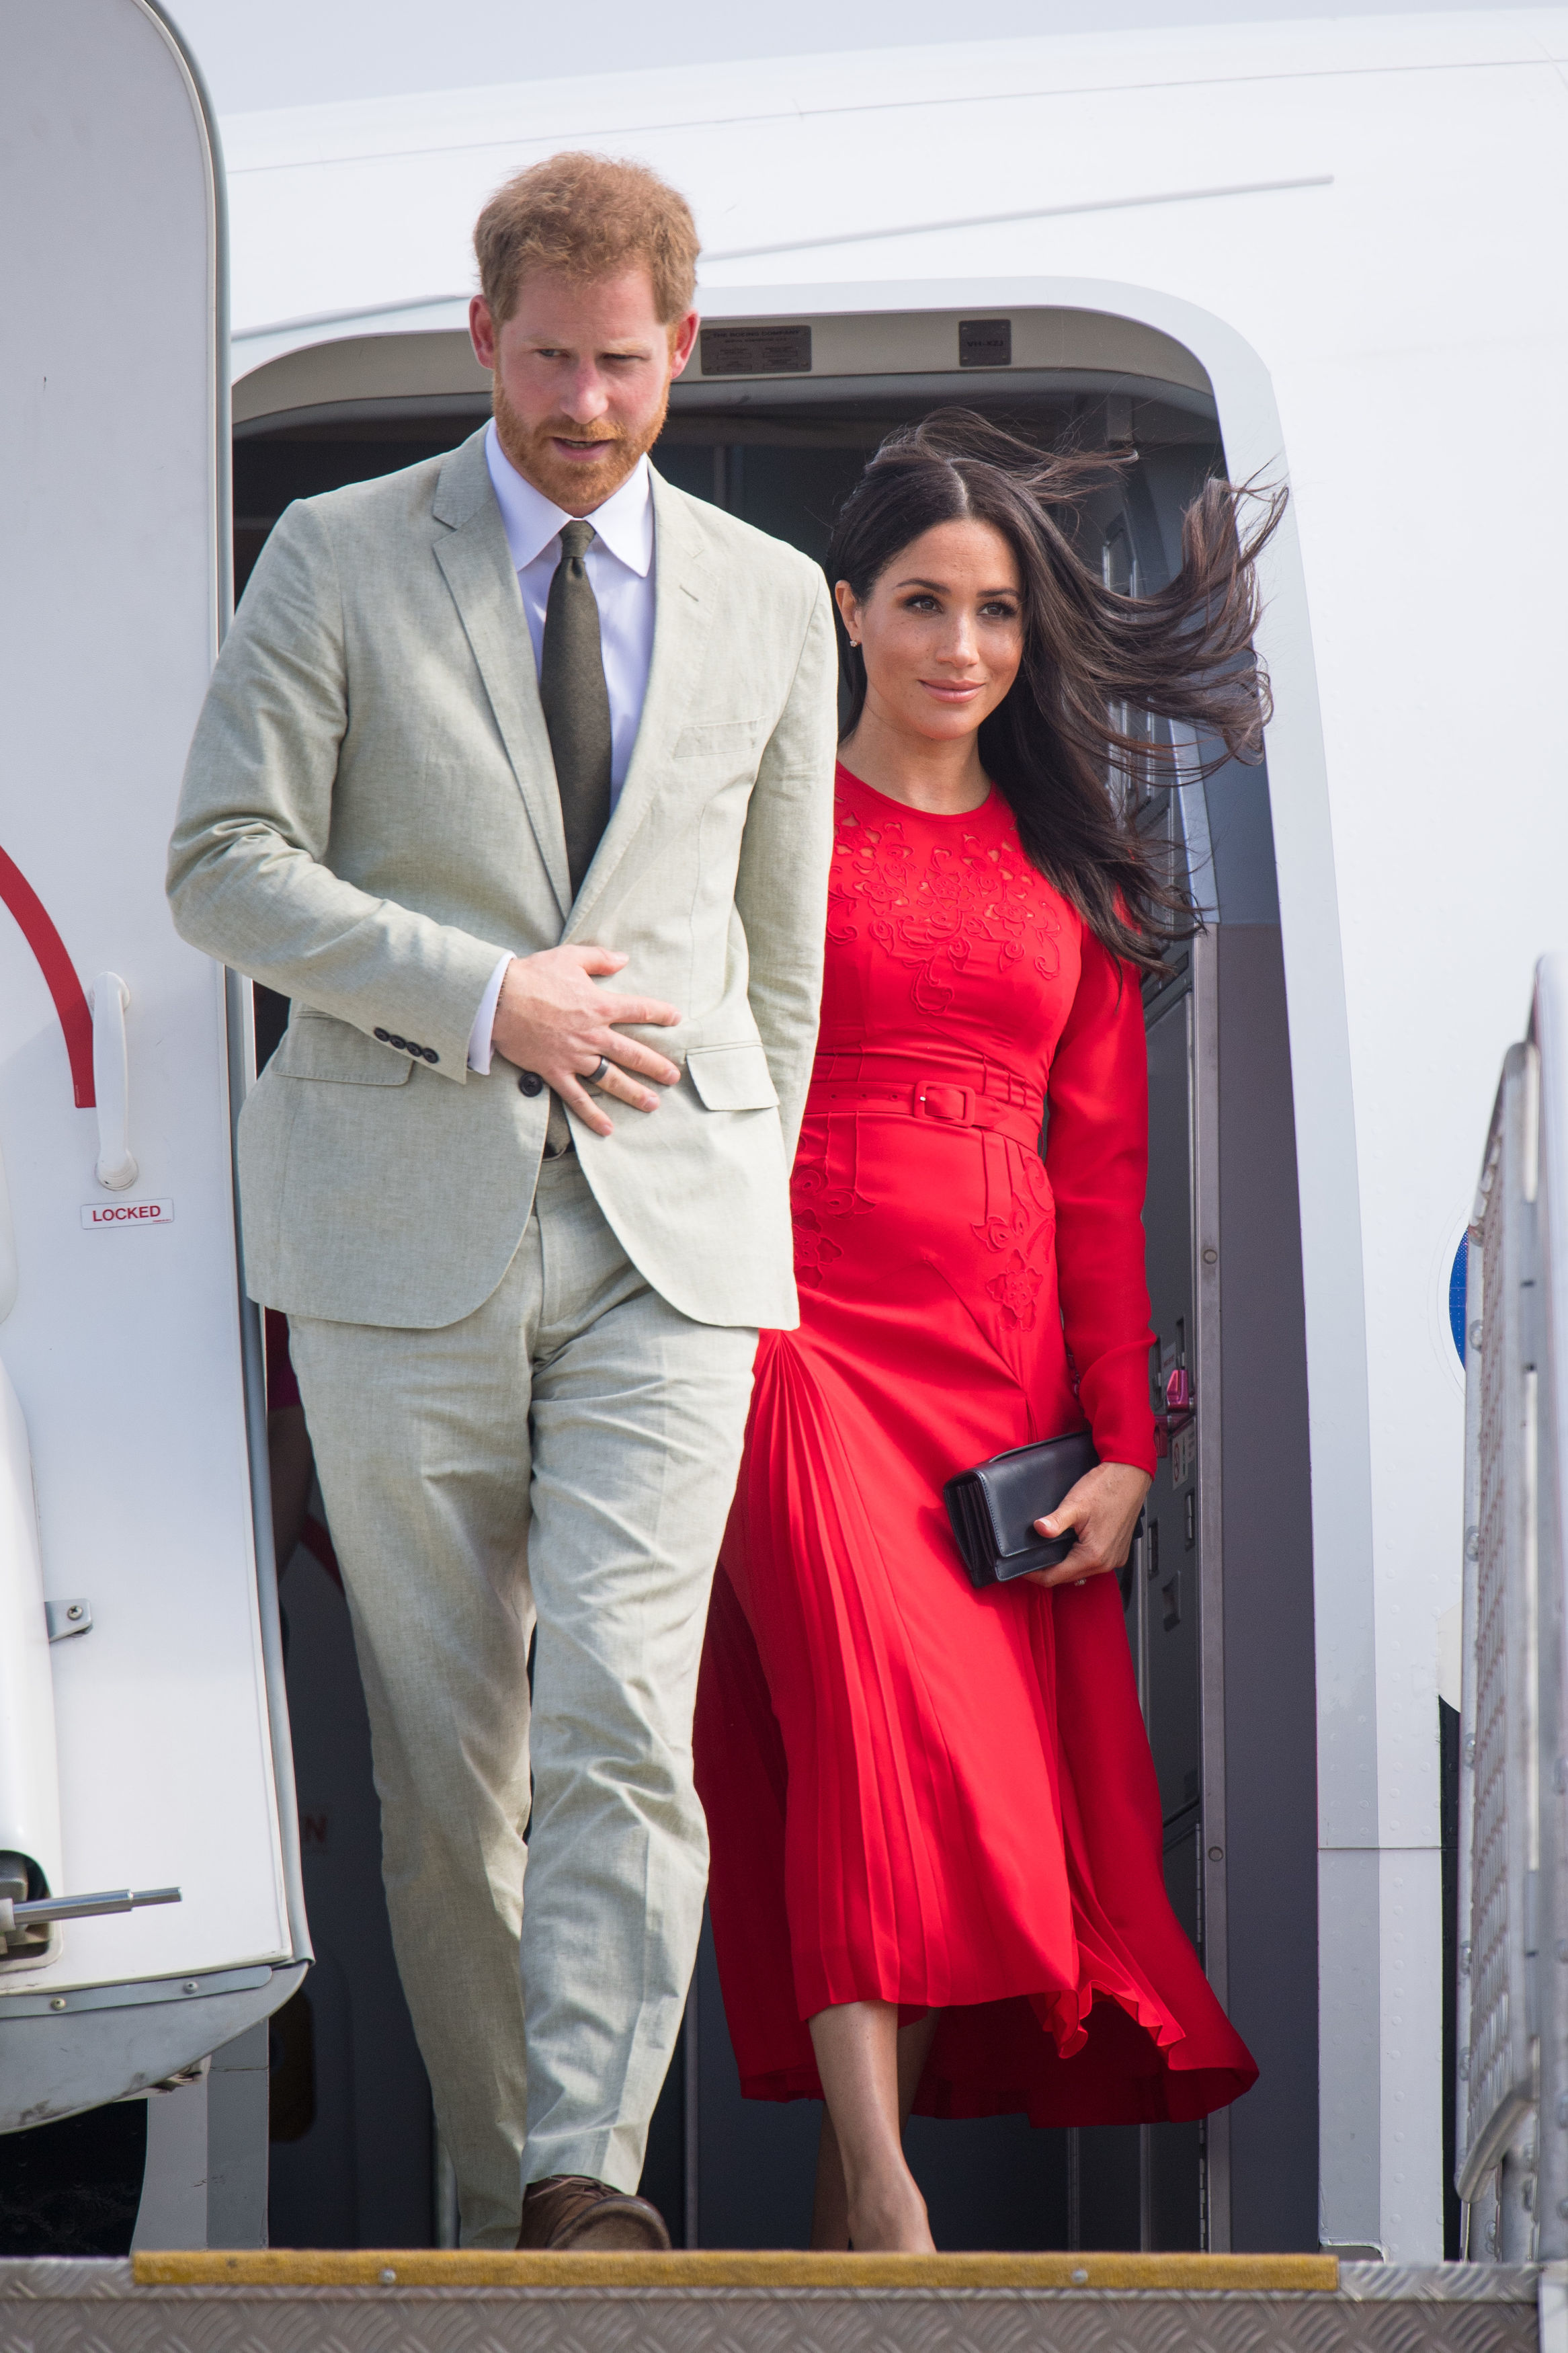 Prince Harry, Duke of Sussex and Meghan, Duchess of Sussex arrive at Fua'amotu Airport on October 25, 2018 in Nuku'Alofa, Tonga. The Duke and Duchess of Sussex are on their official 16-day Autumn tour visiting cities in Australia, Fiji, Tonga and New Zealand (Getty Images)